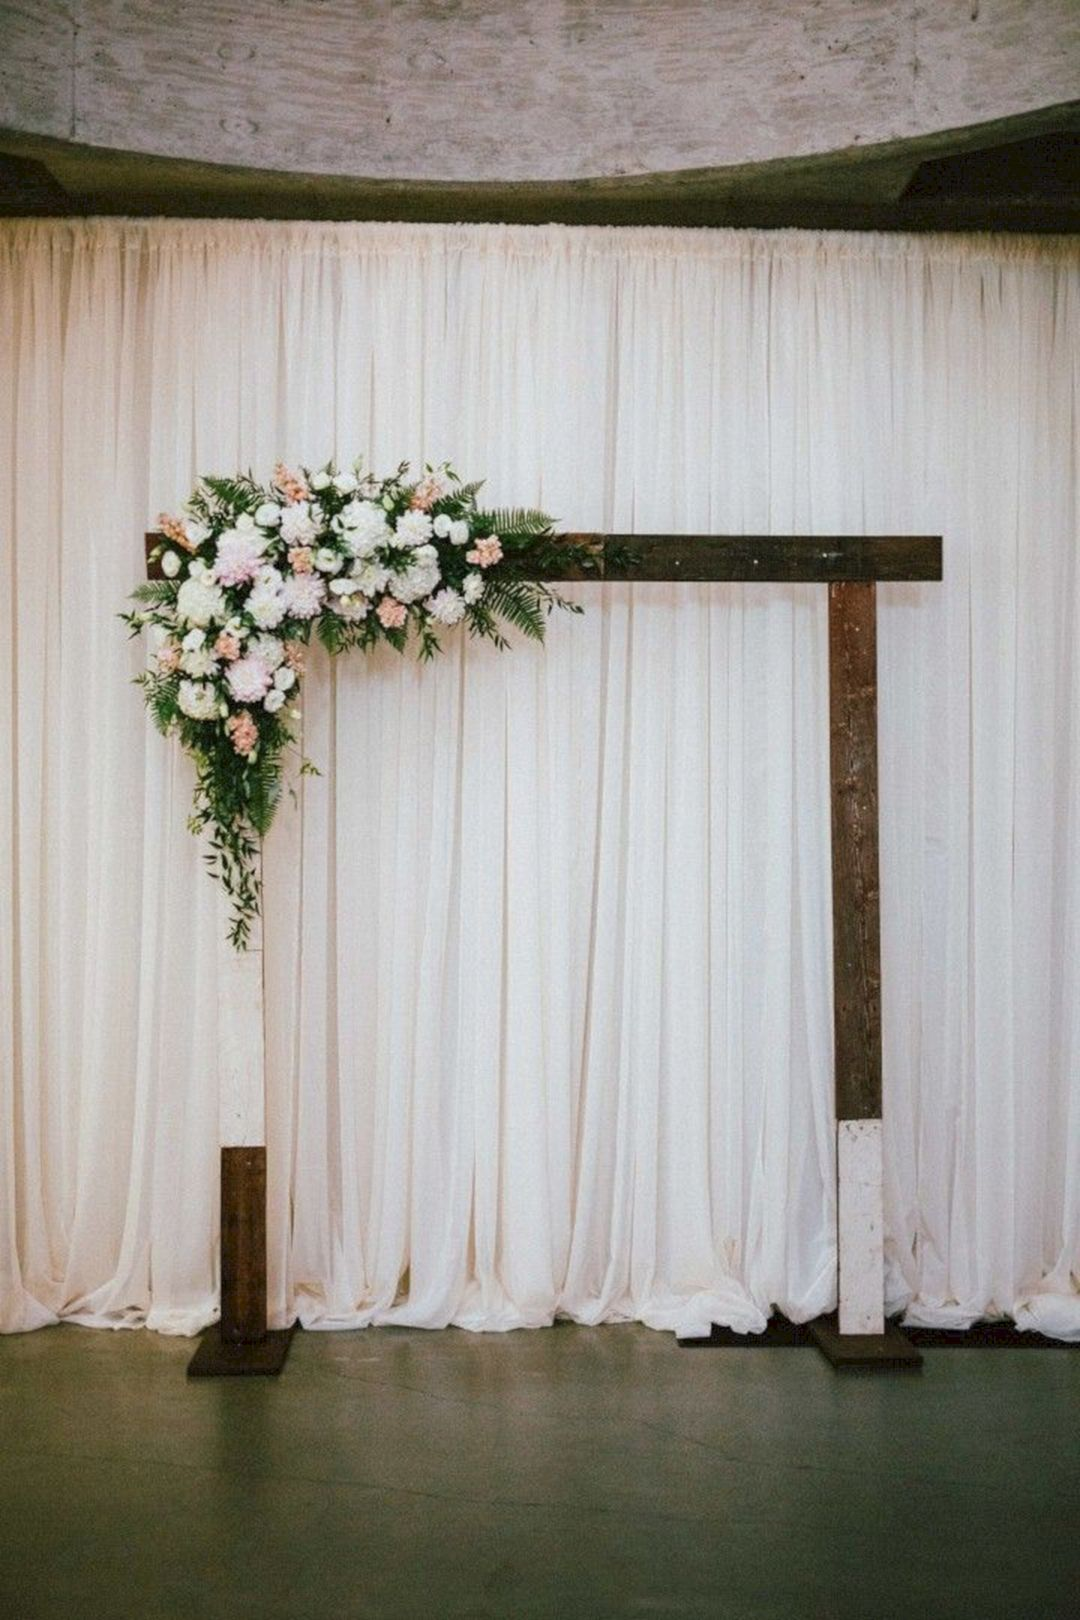 Awesome 30 Simple Wedding Backdrop Ideas For Your Ceremony Https Oosile